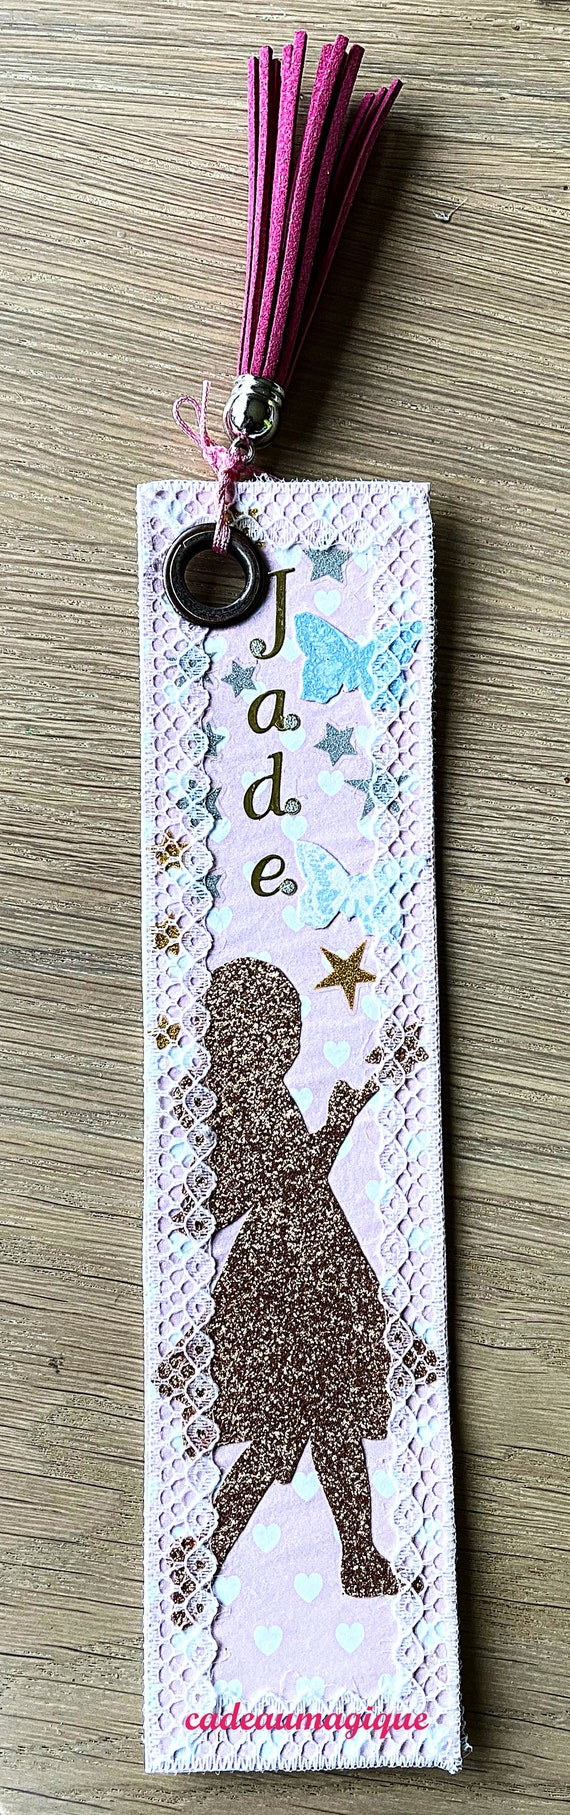 Brand page personalized sequins pompom faux leather gift idea to customize